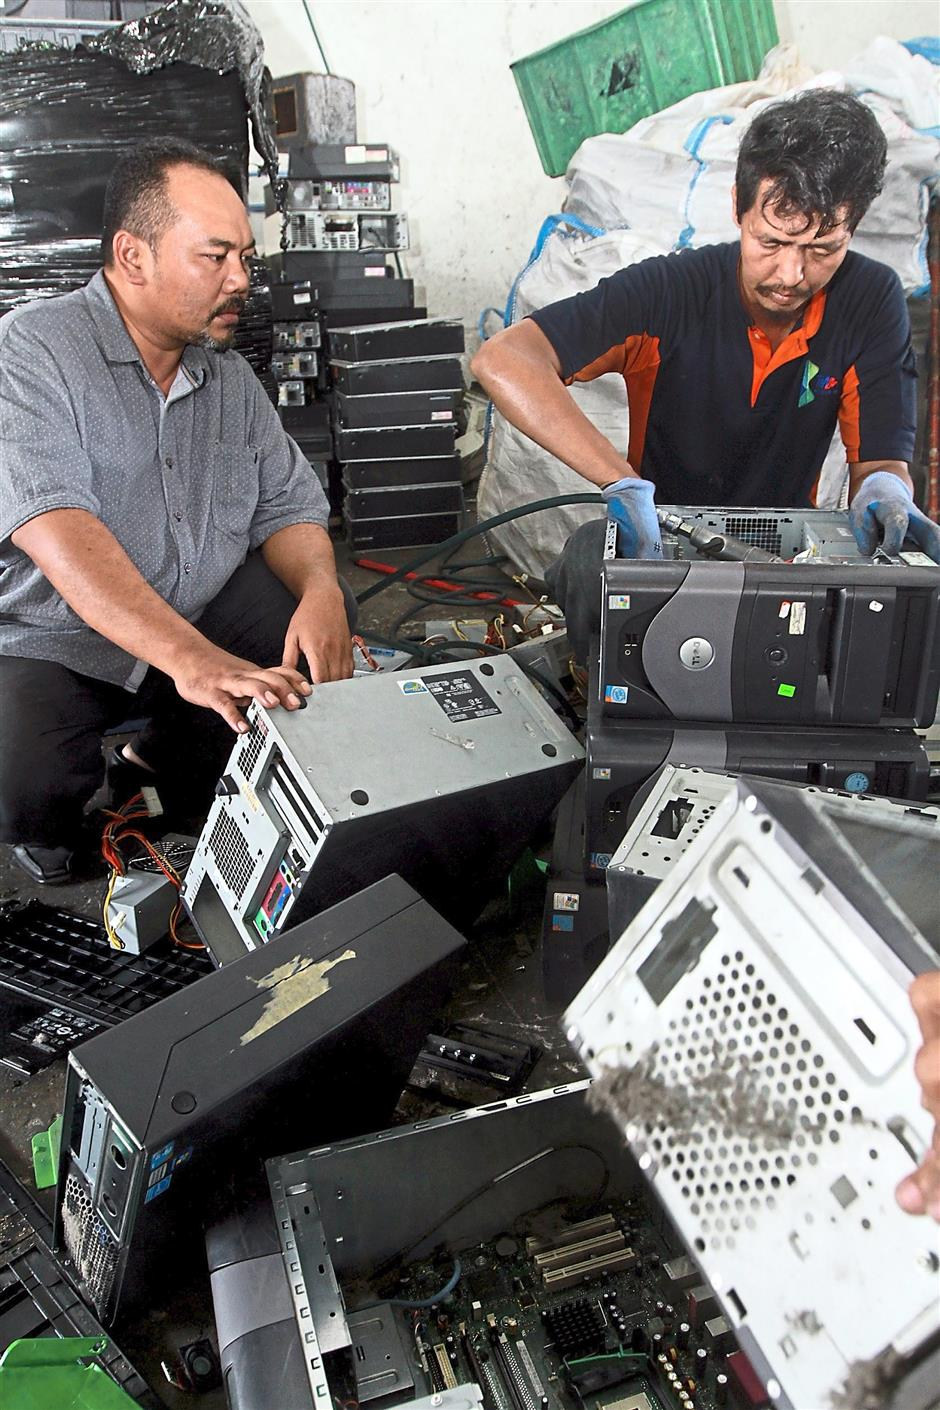 Syamsul (left) says that the company won't junk any computers that can be fixed and resold. — K.K. SHAM/The Star